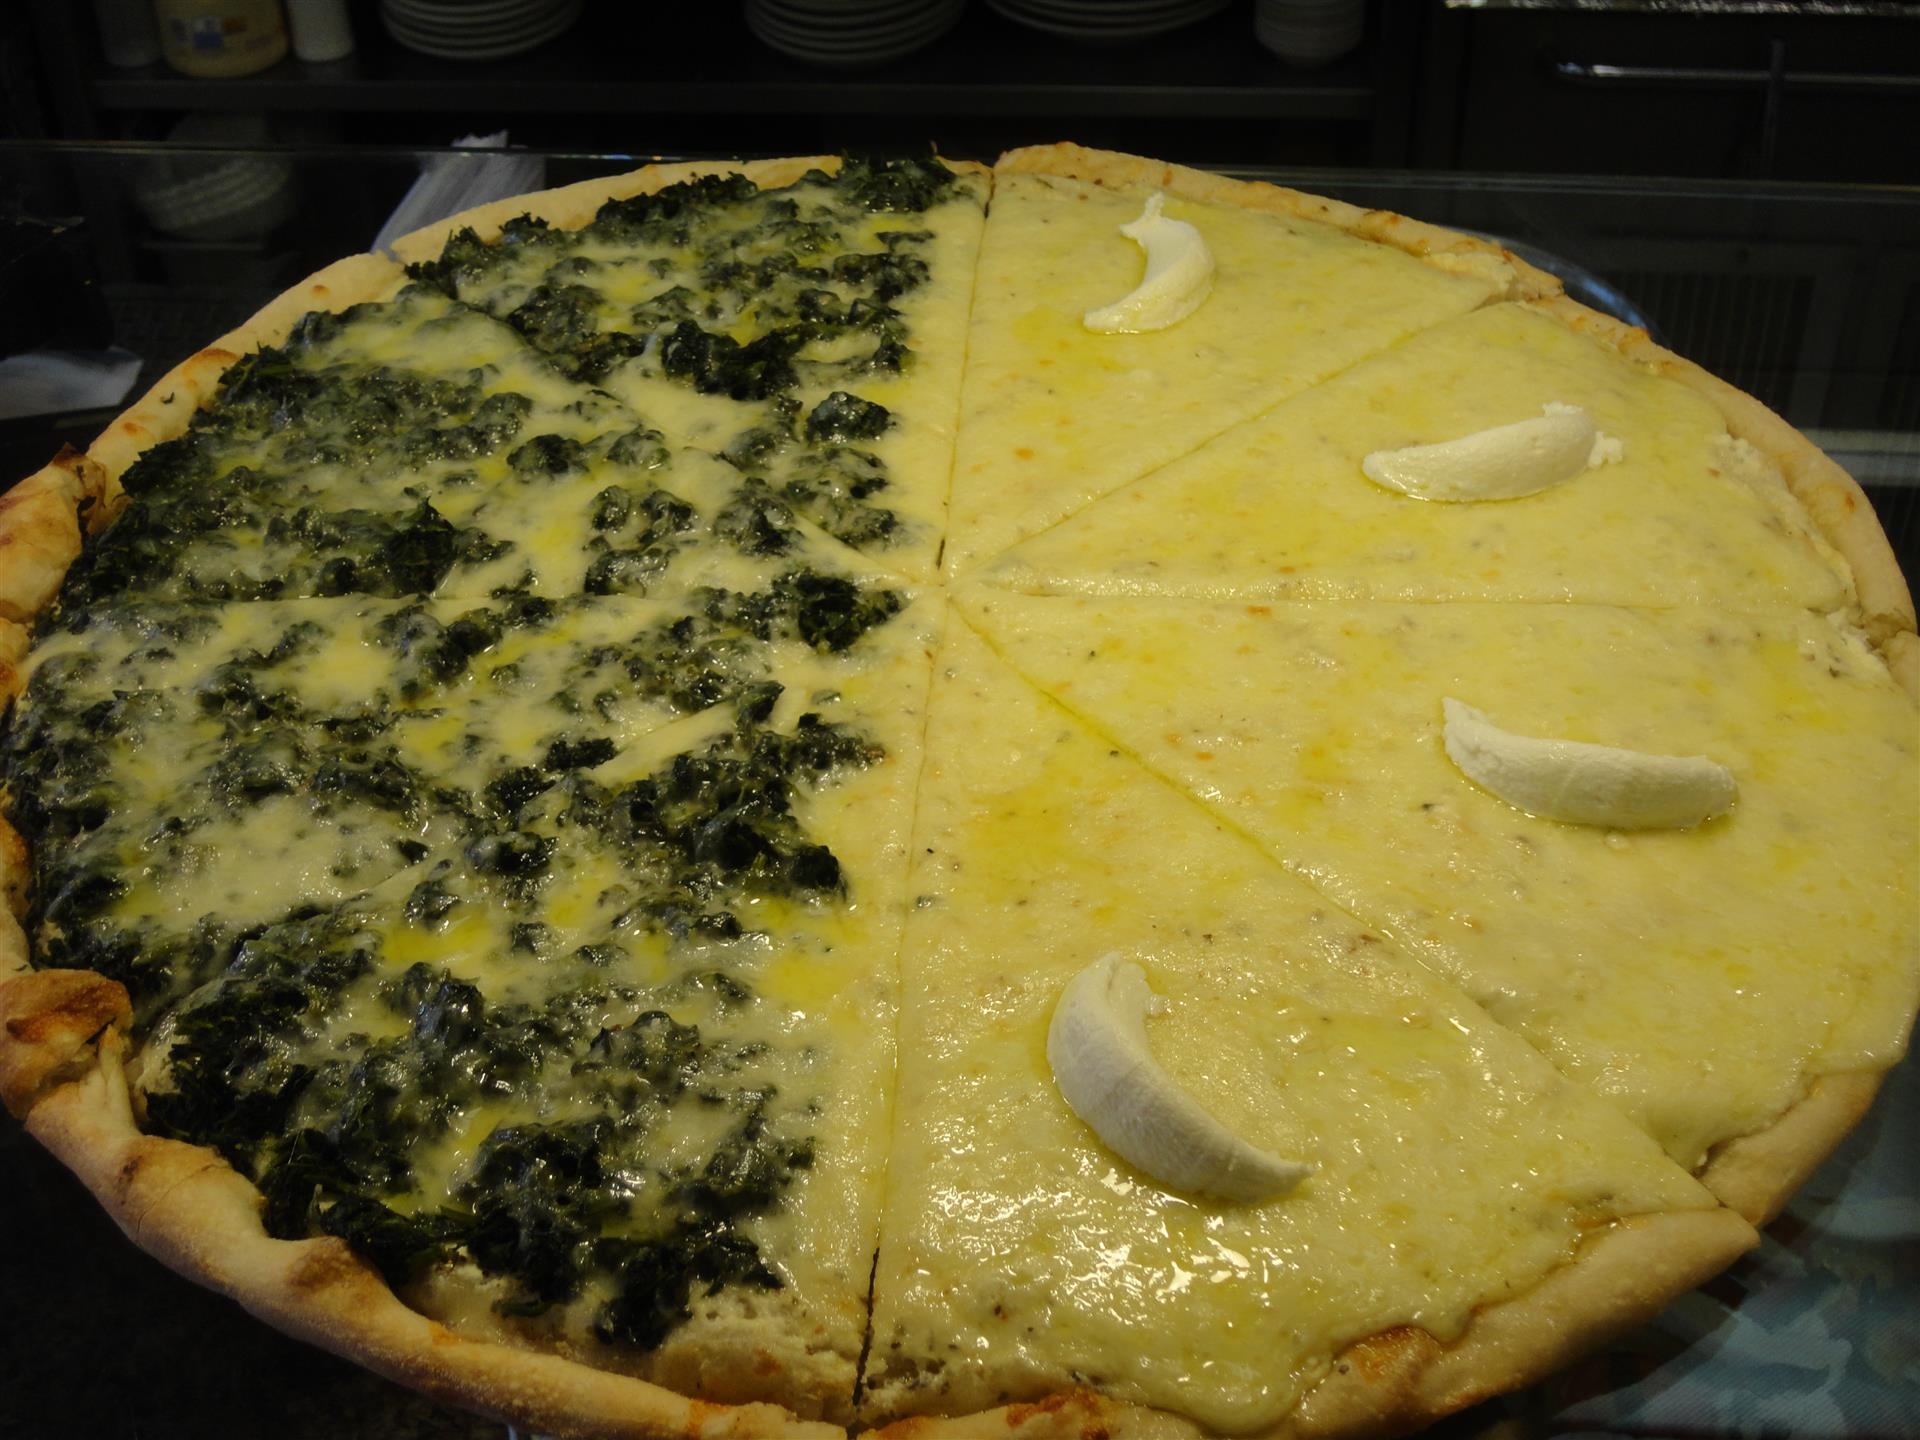 Pizza with half spinach and half white cheese pie